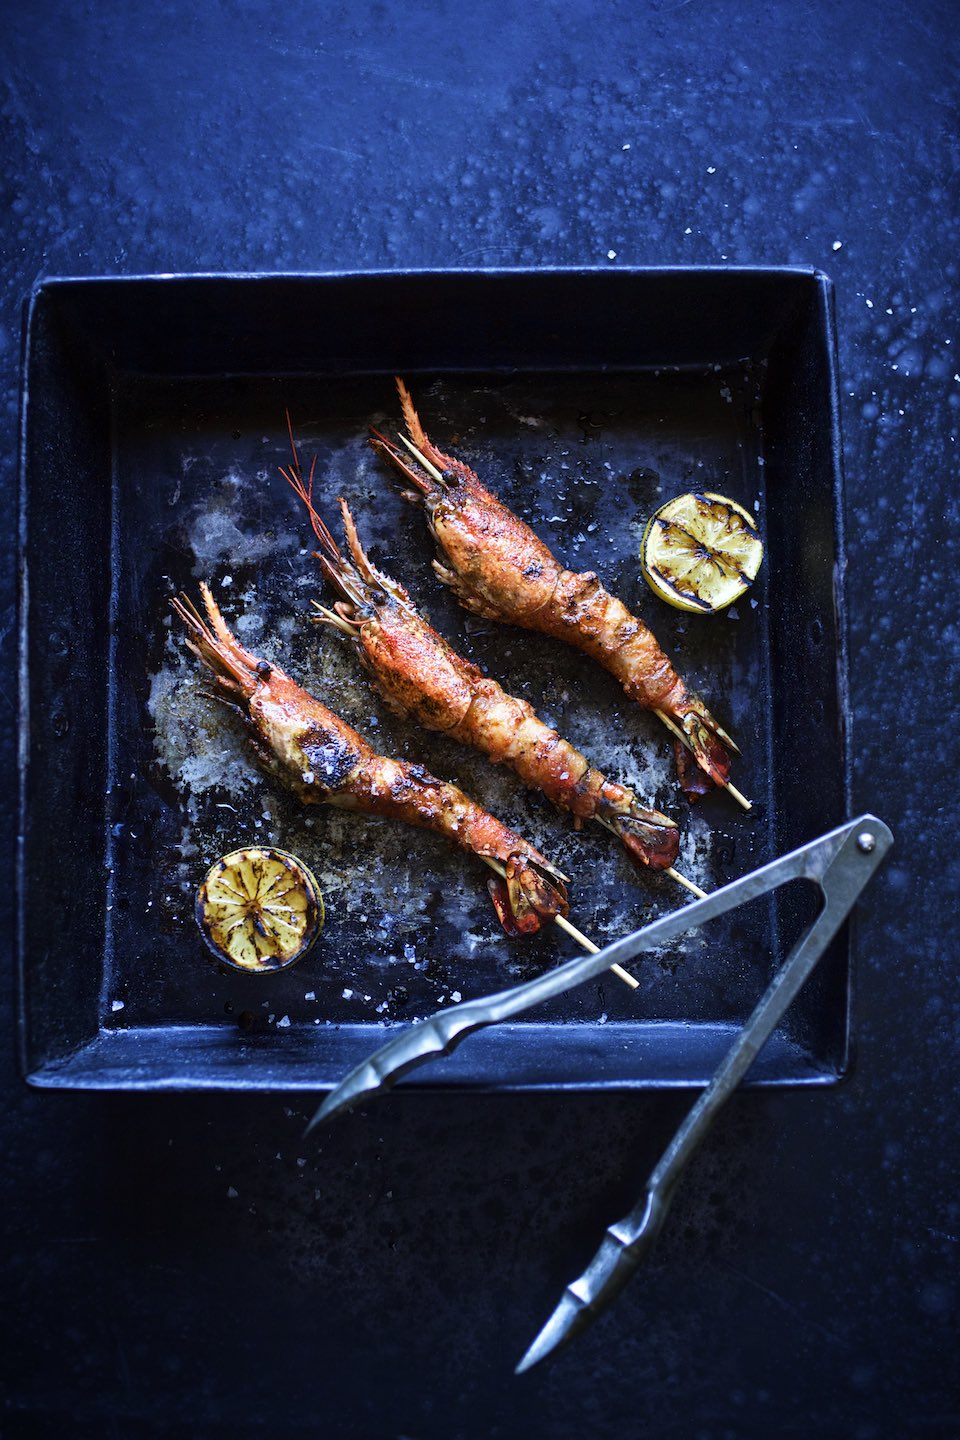 Three skewered prawns with lemon in cast iron, on black surface.